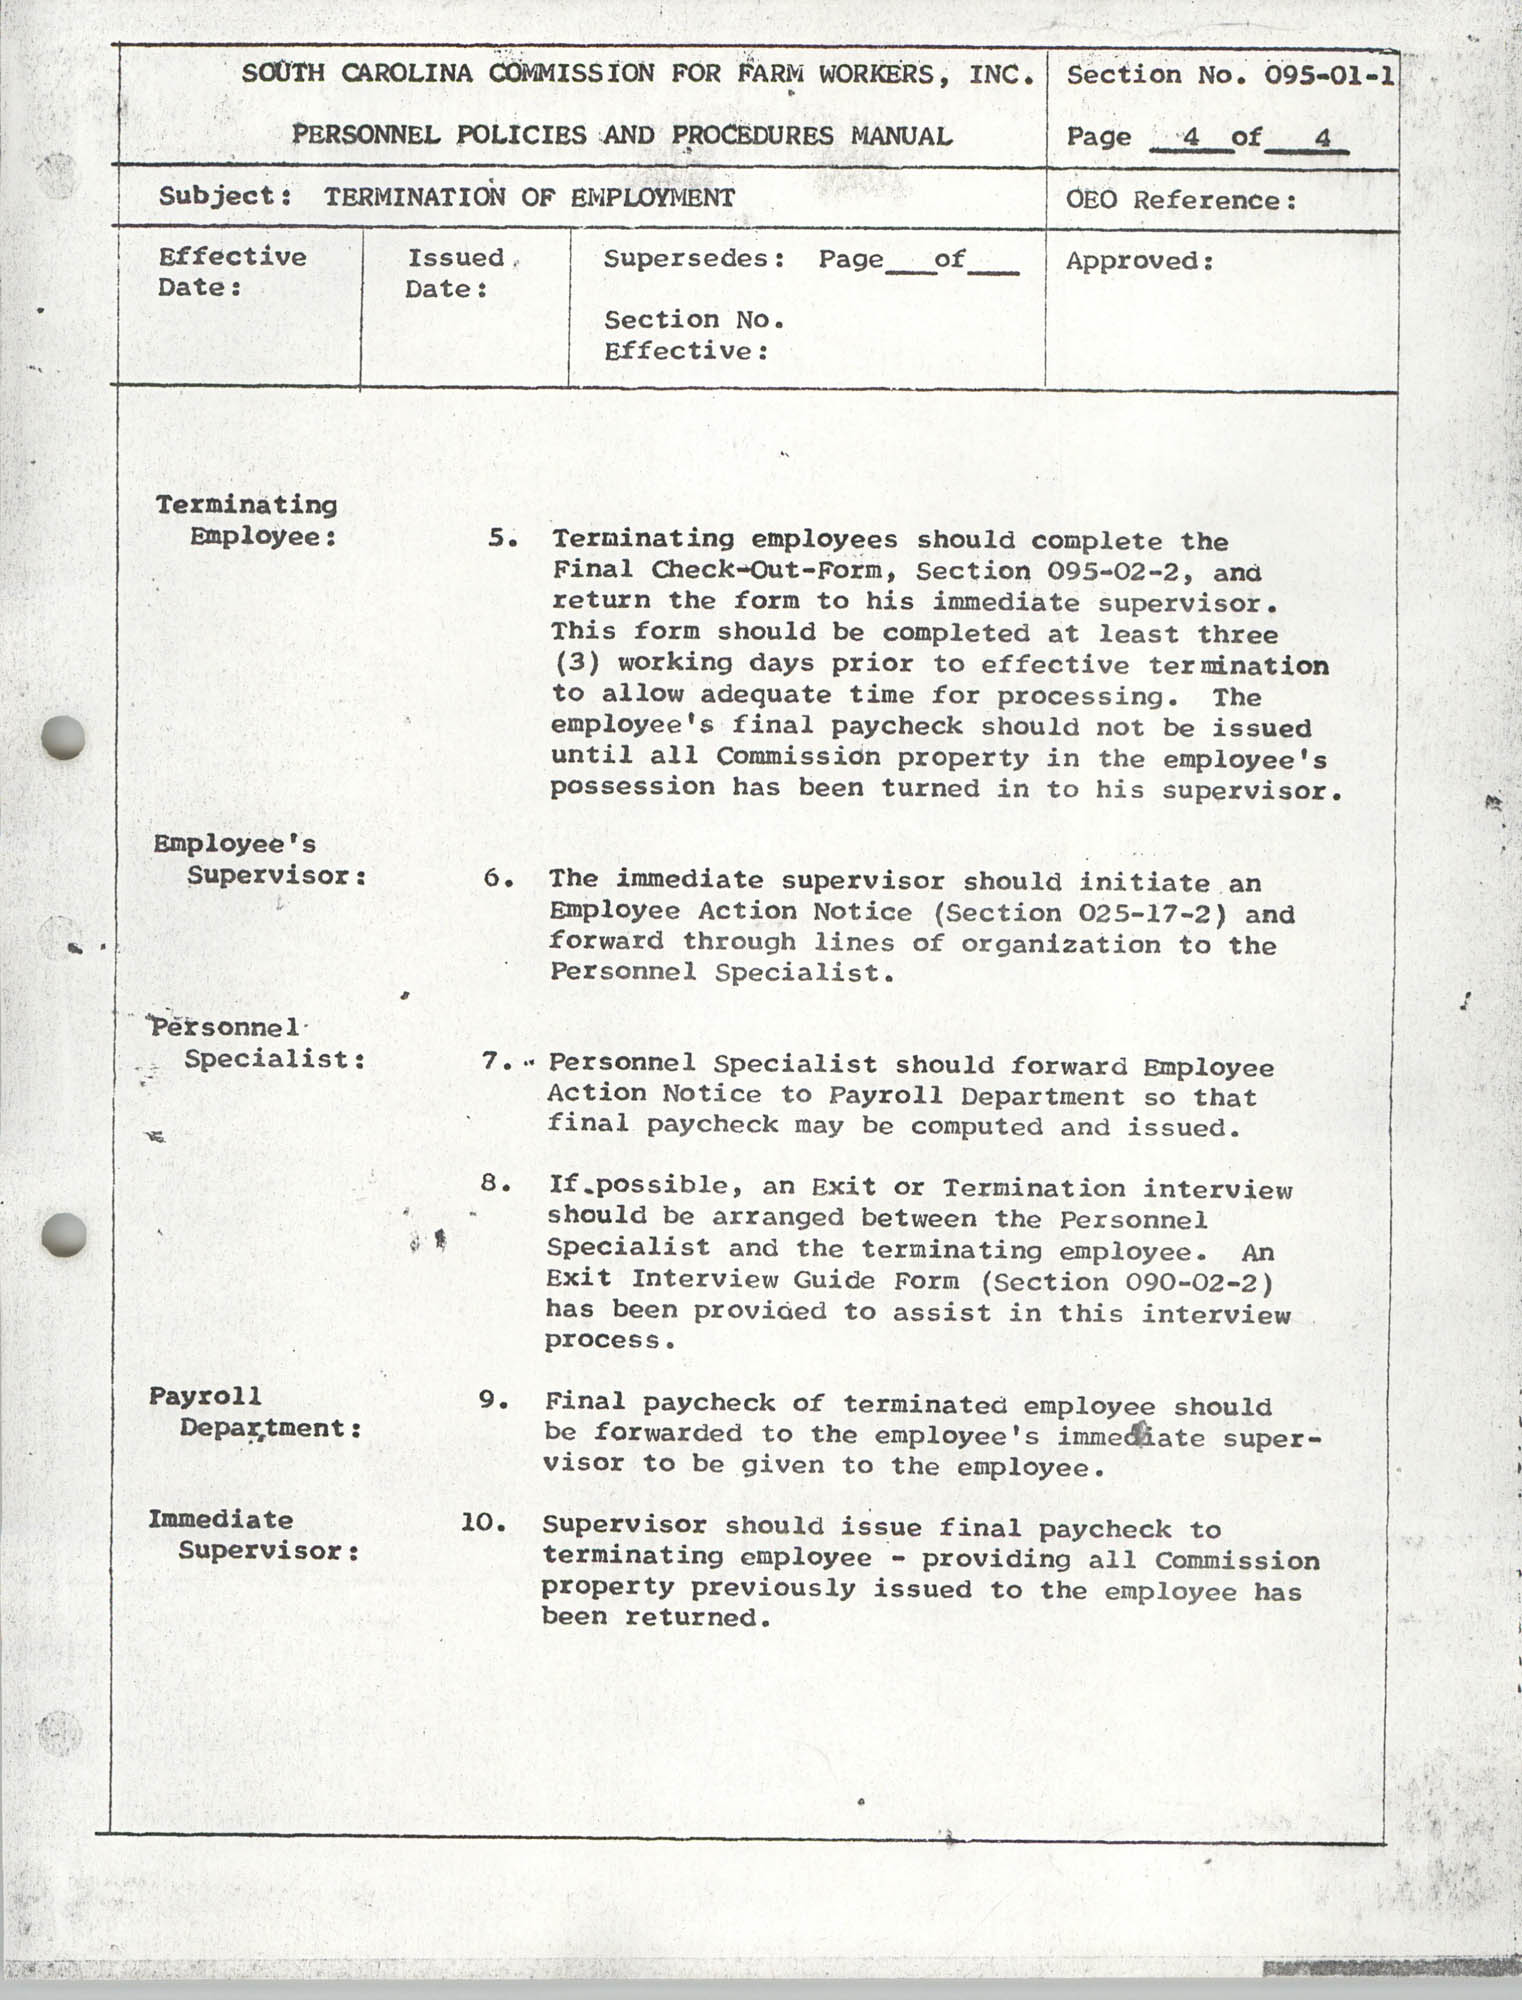 Personnel Policies and Procedures Manual, Section No. 095-01-1, Page 4